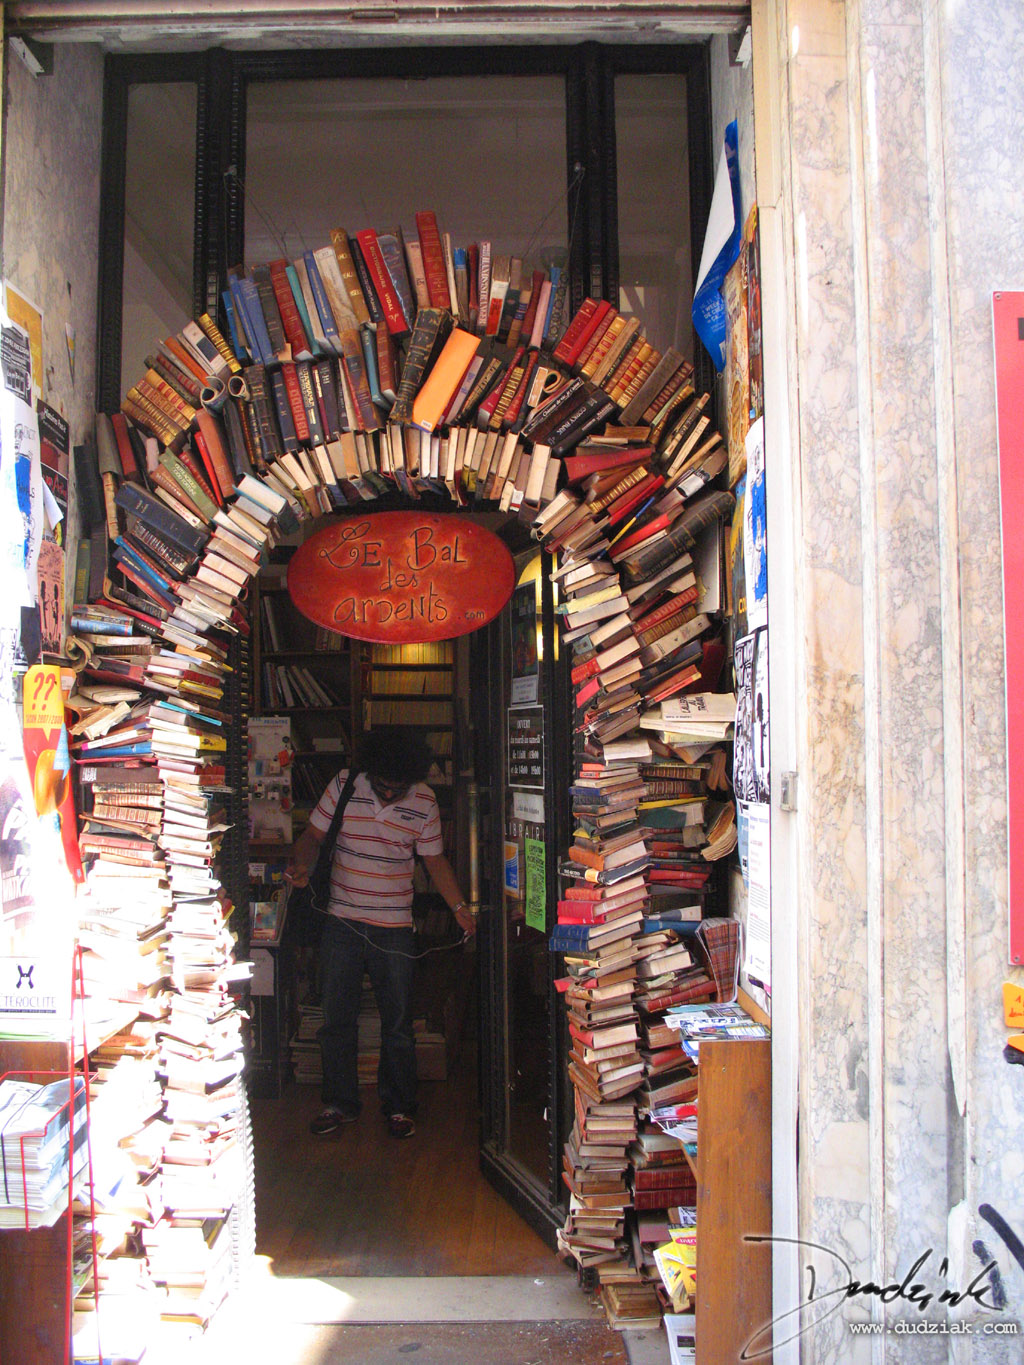 books,  Le Bal de Ardents,  bookstore,  france,  lyon,  arch